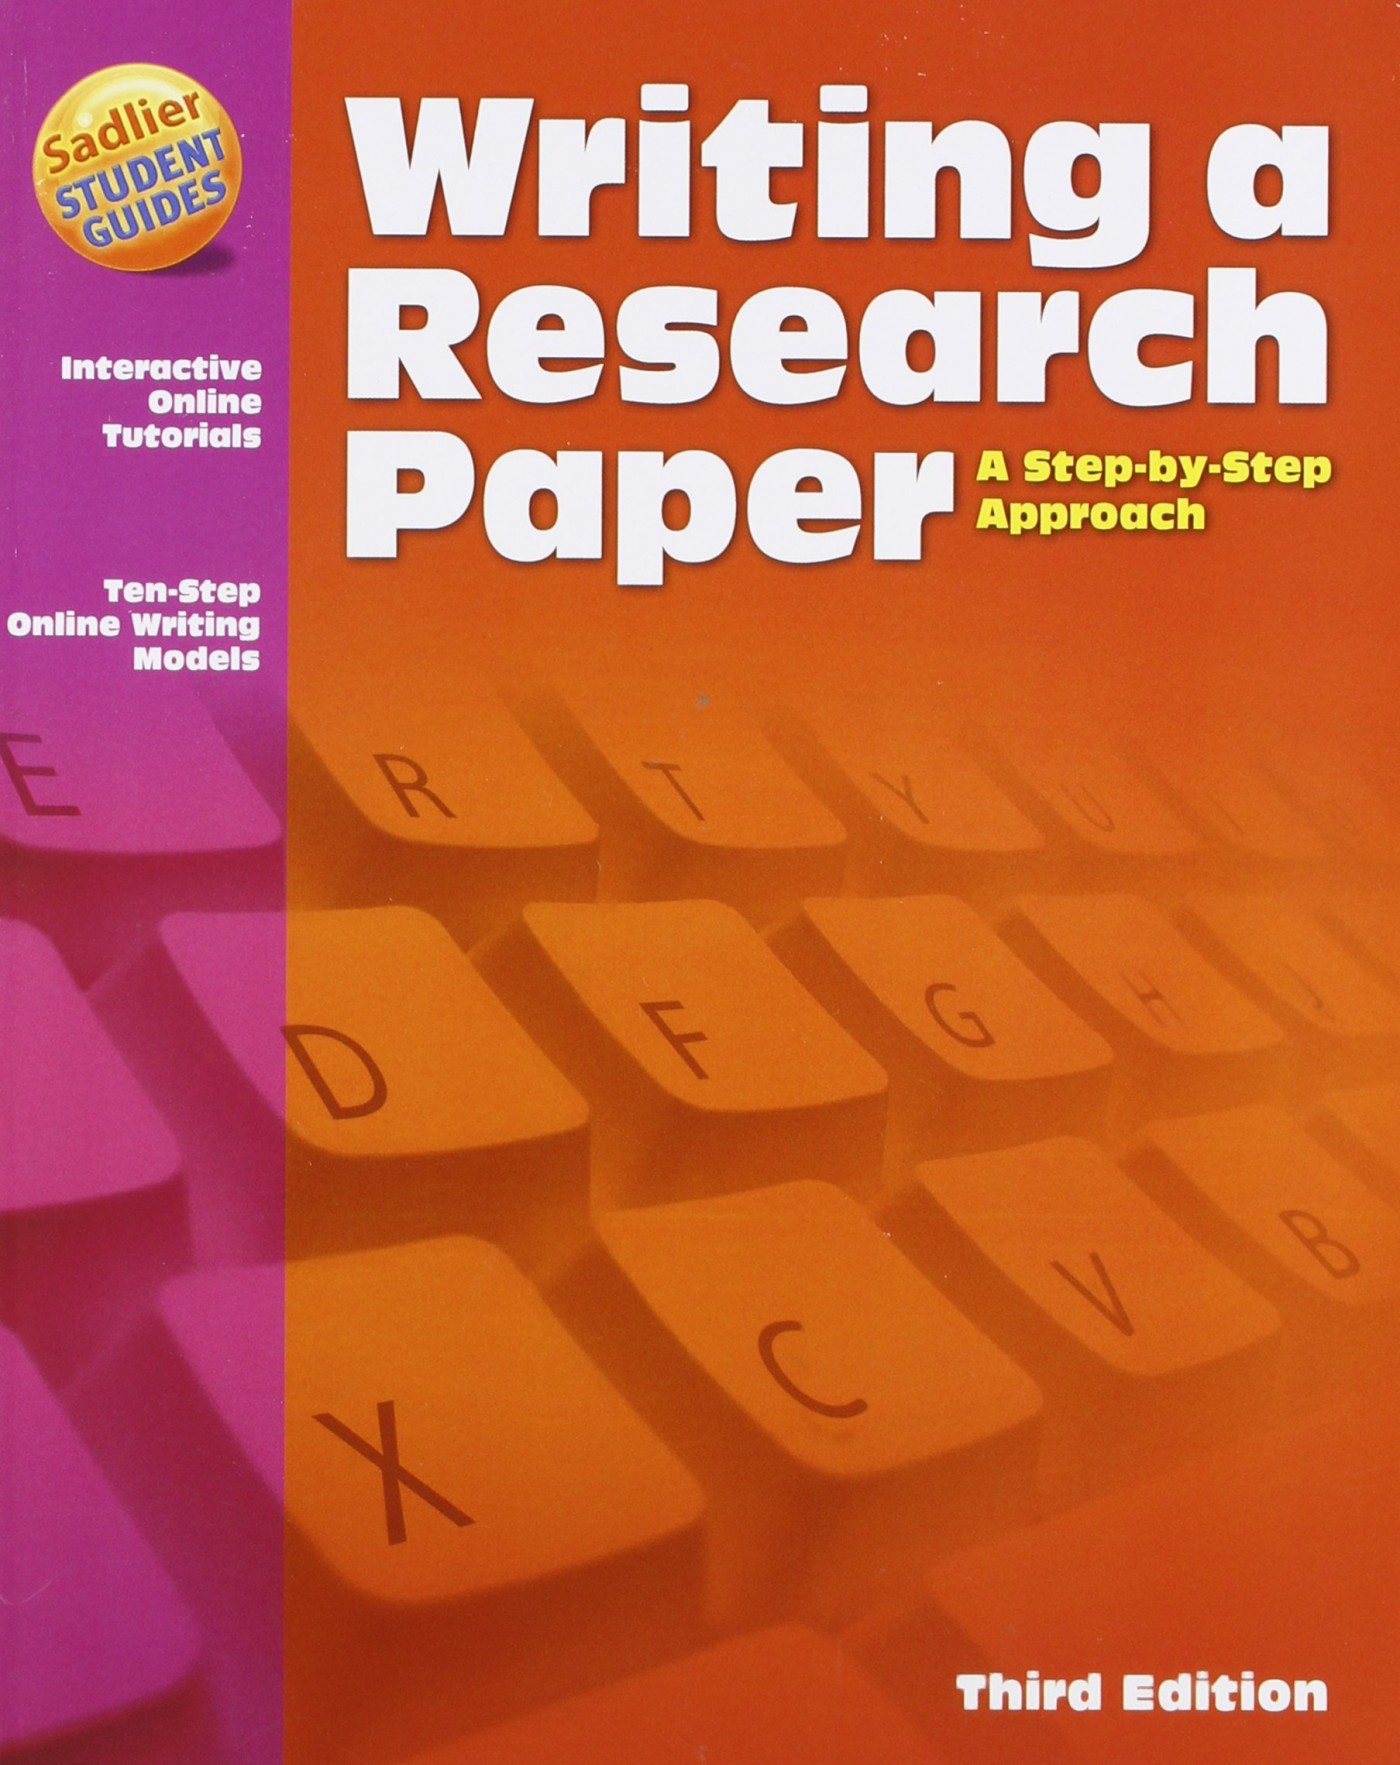 028 81uqfpthpml Research Paper Writing Fascinating Of Great Pdf Harvard Style Sample 1400